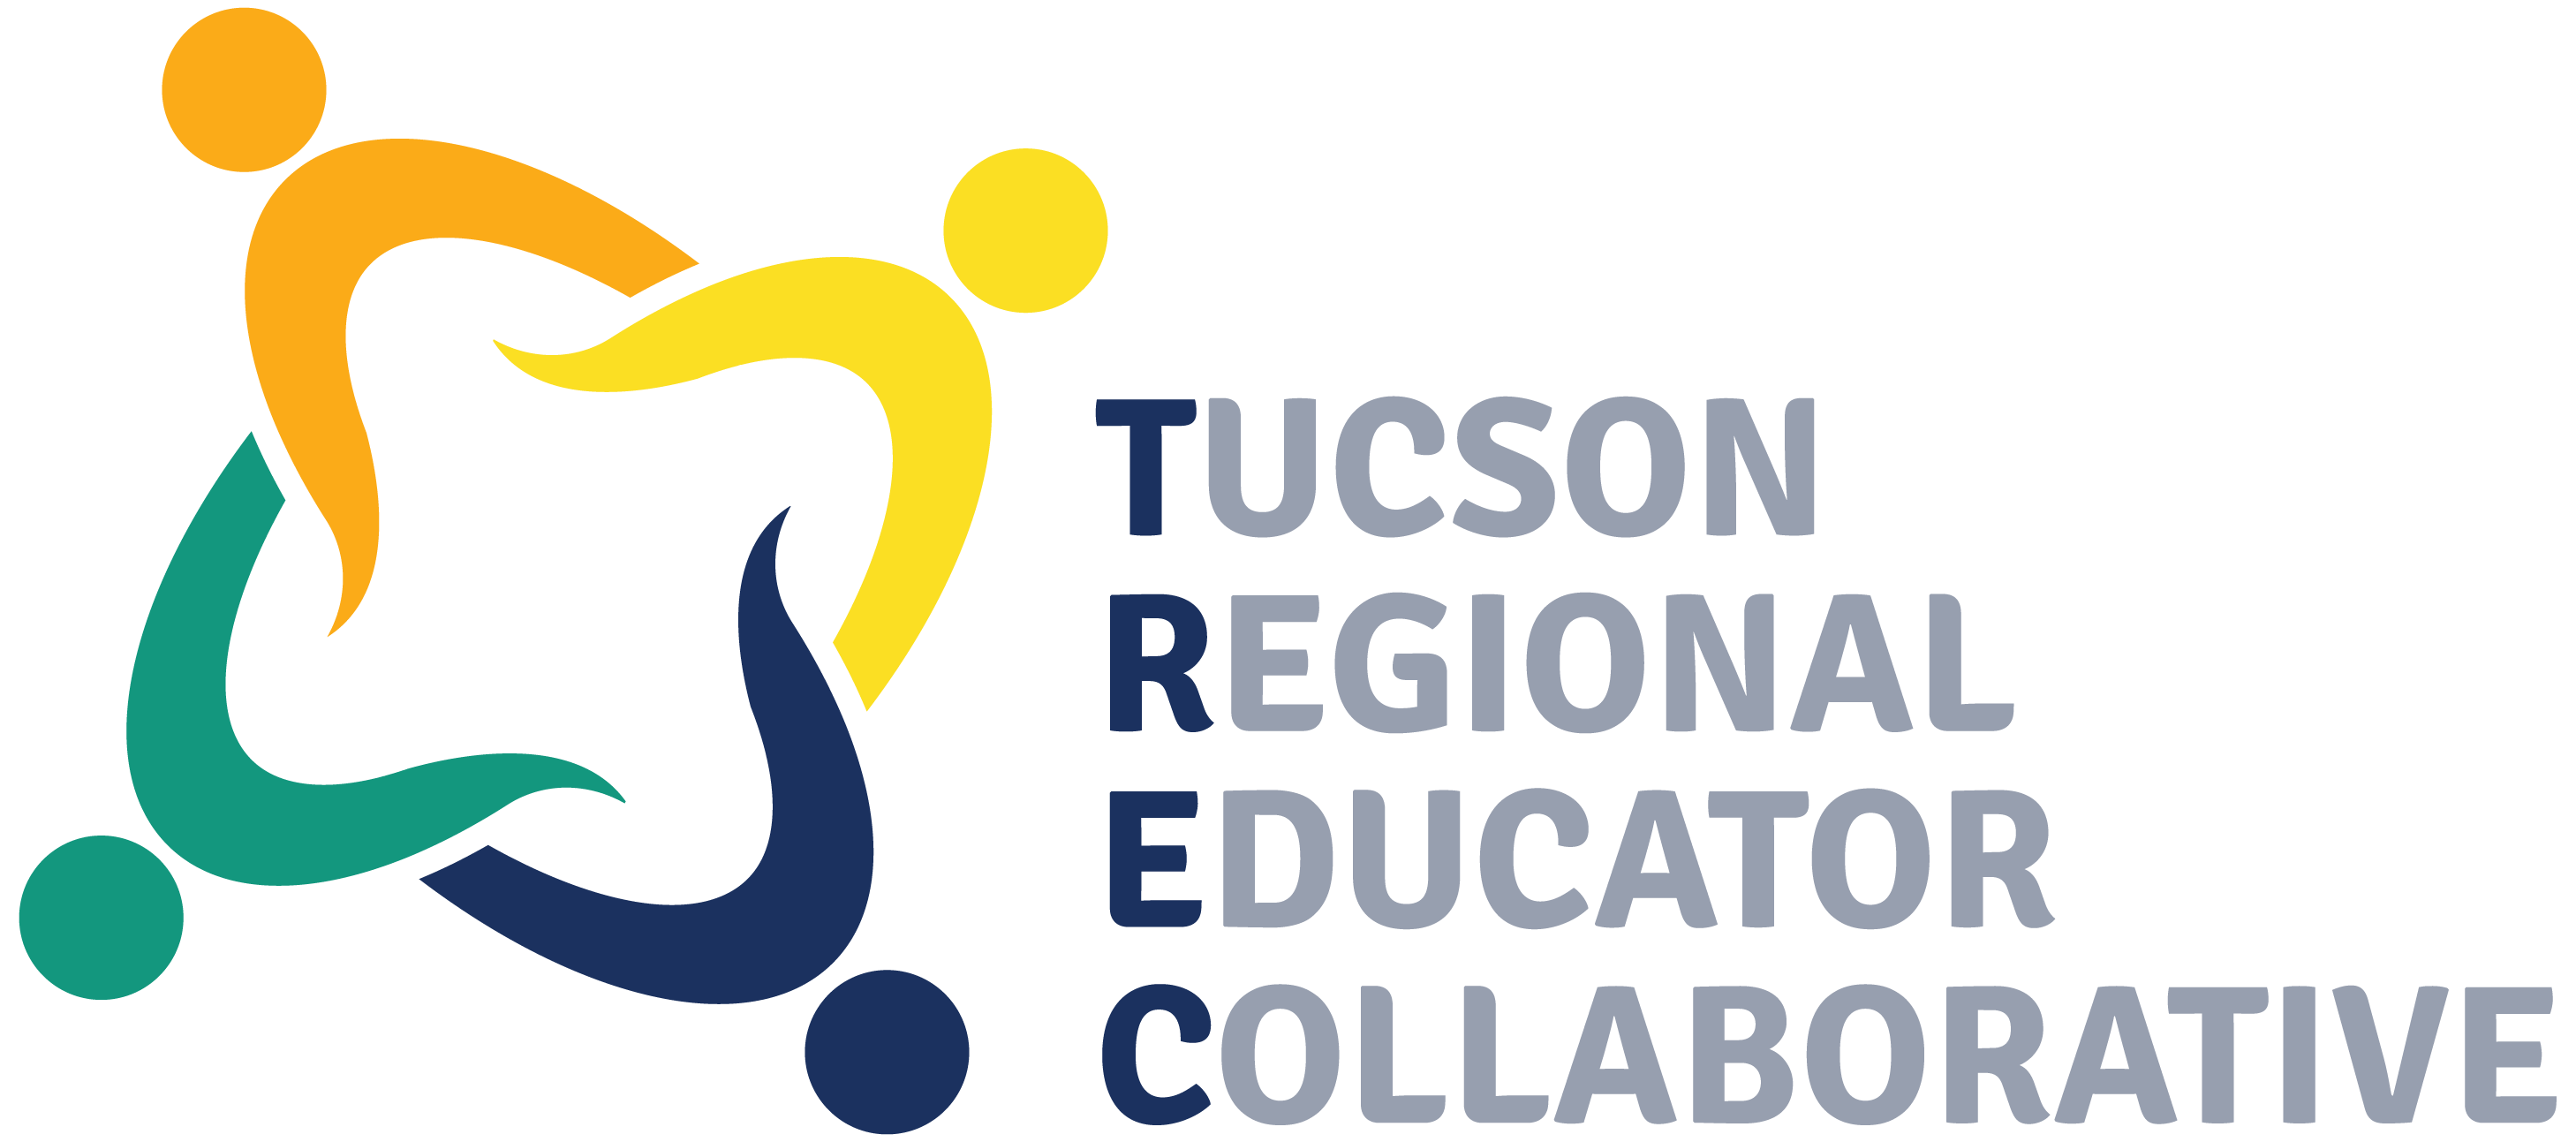 Tucson Regional Educator Collaborative